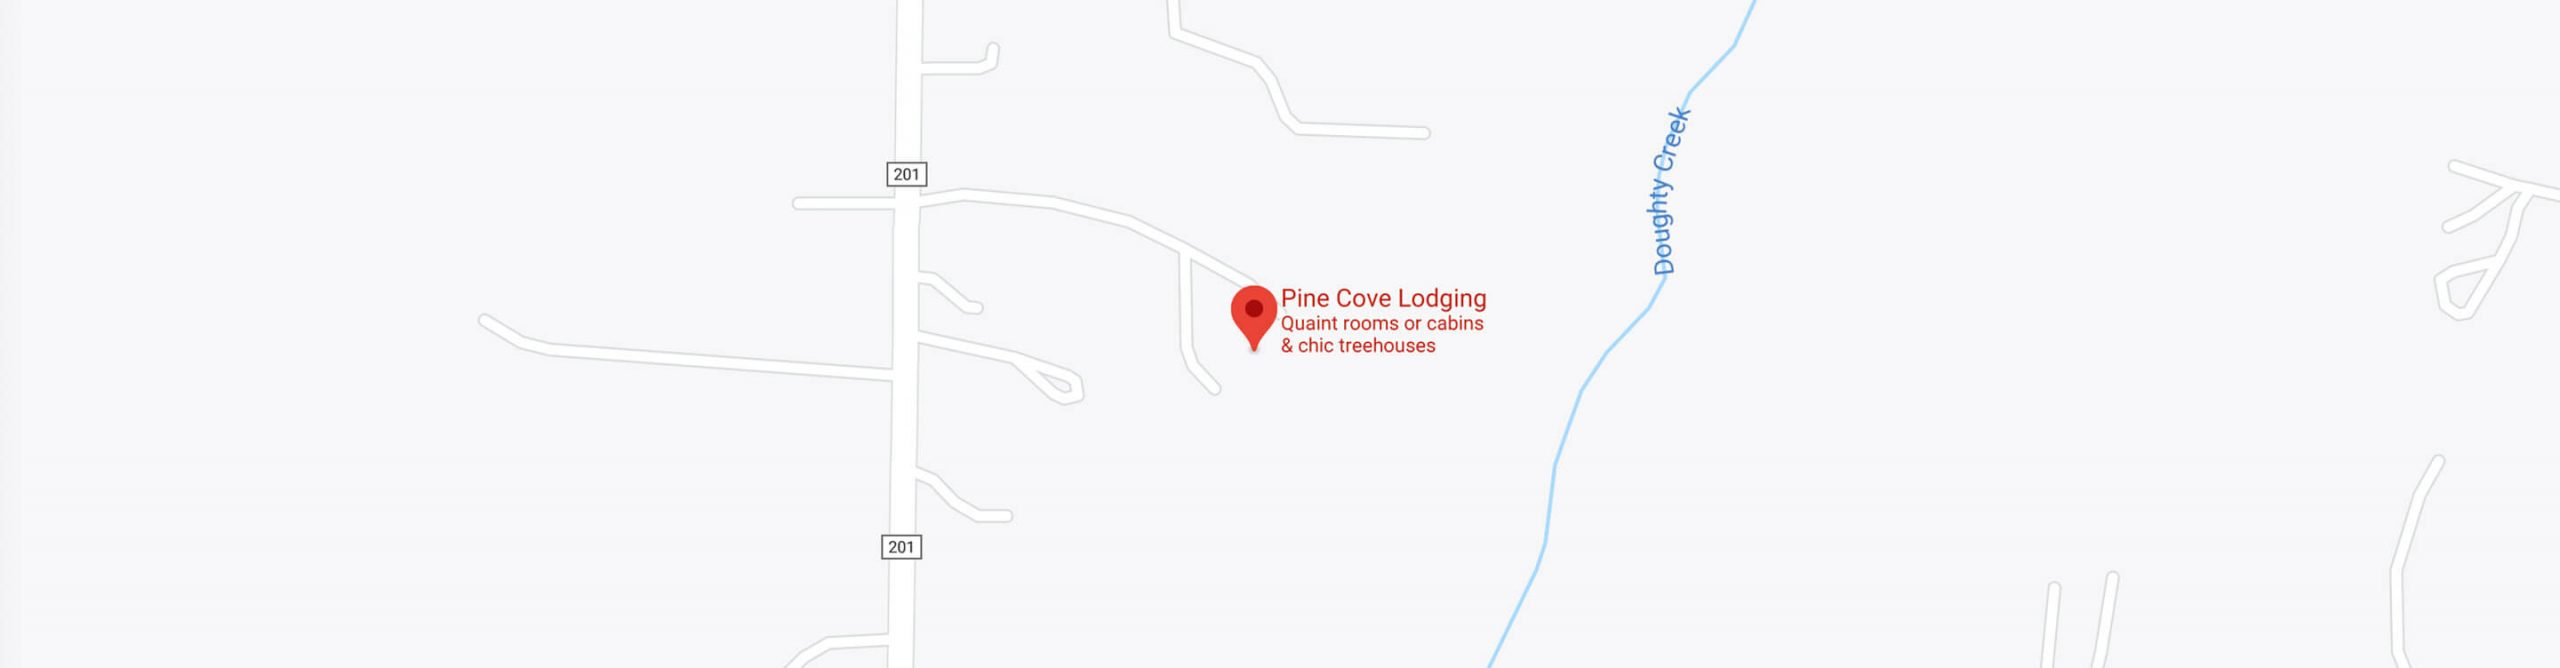 Map of Pine Cove Lodging